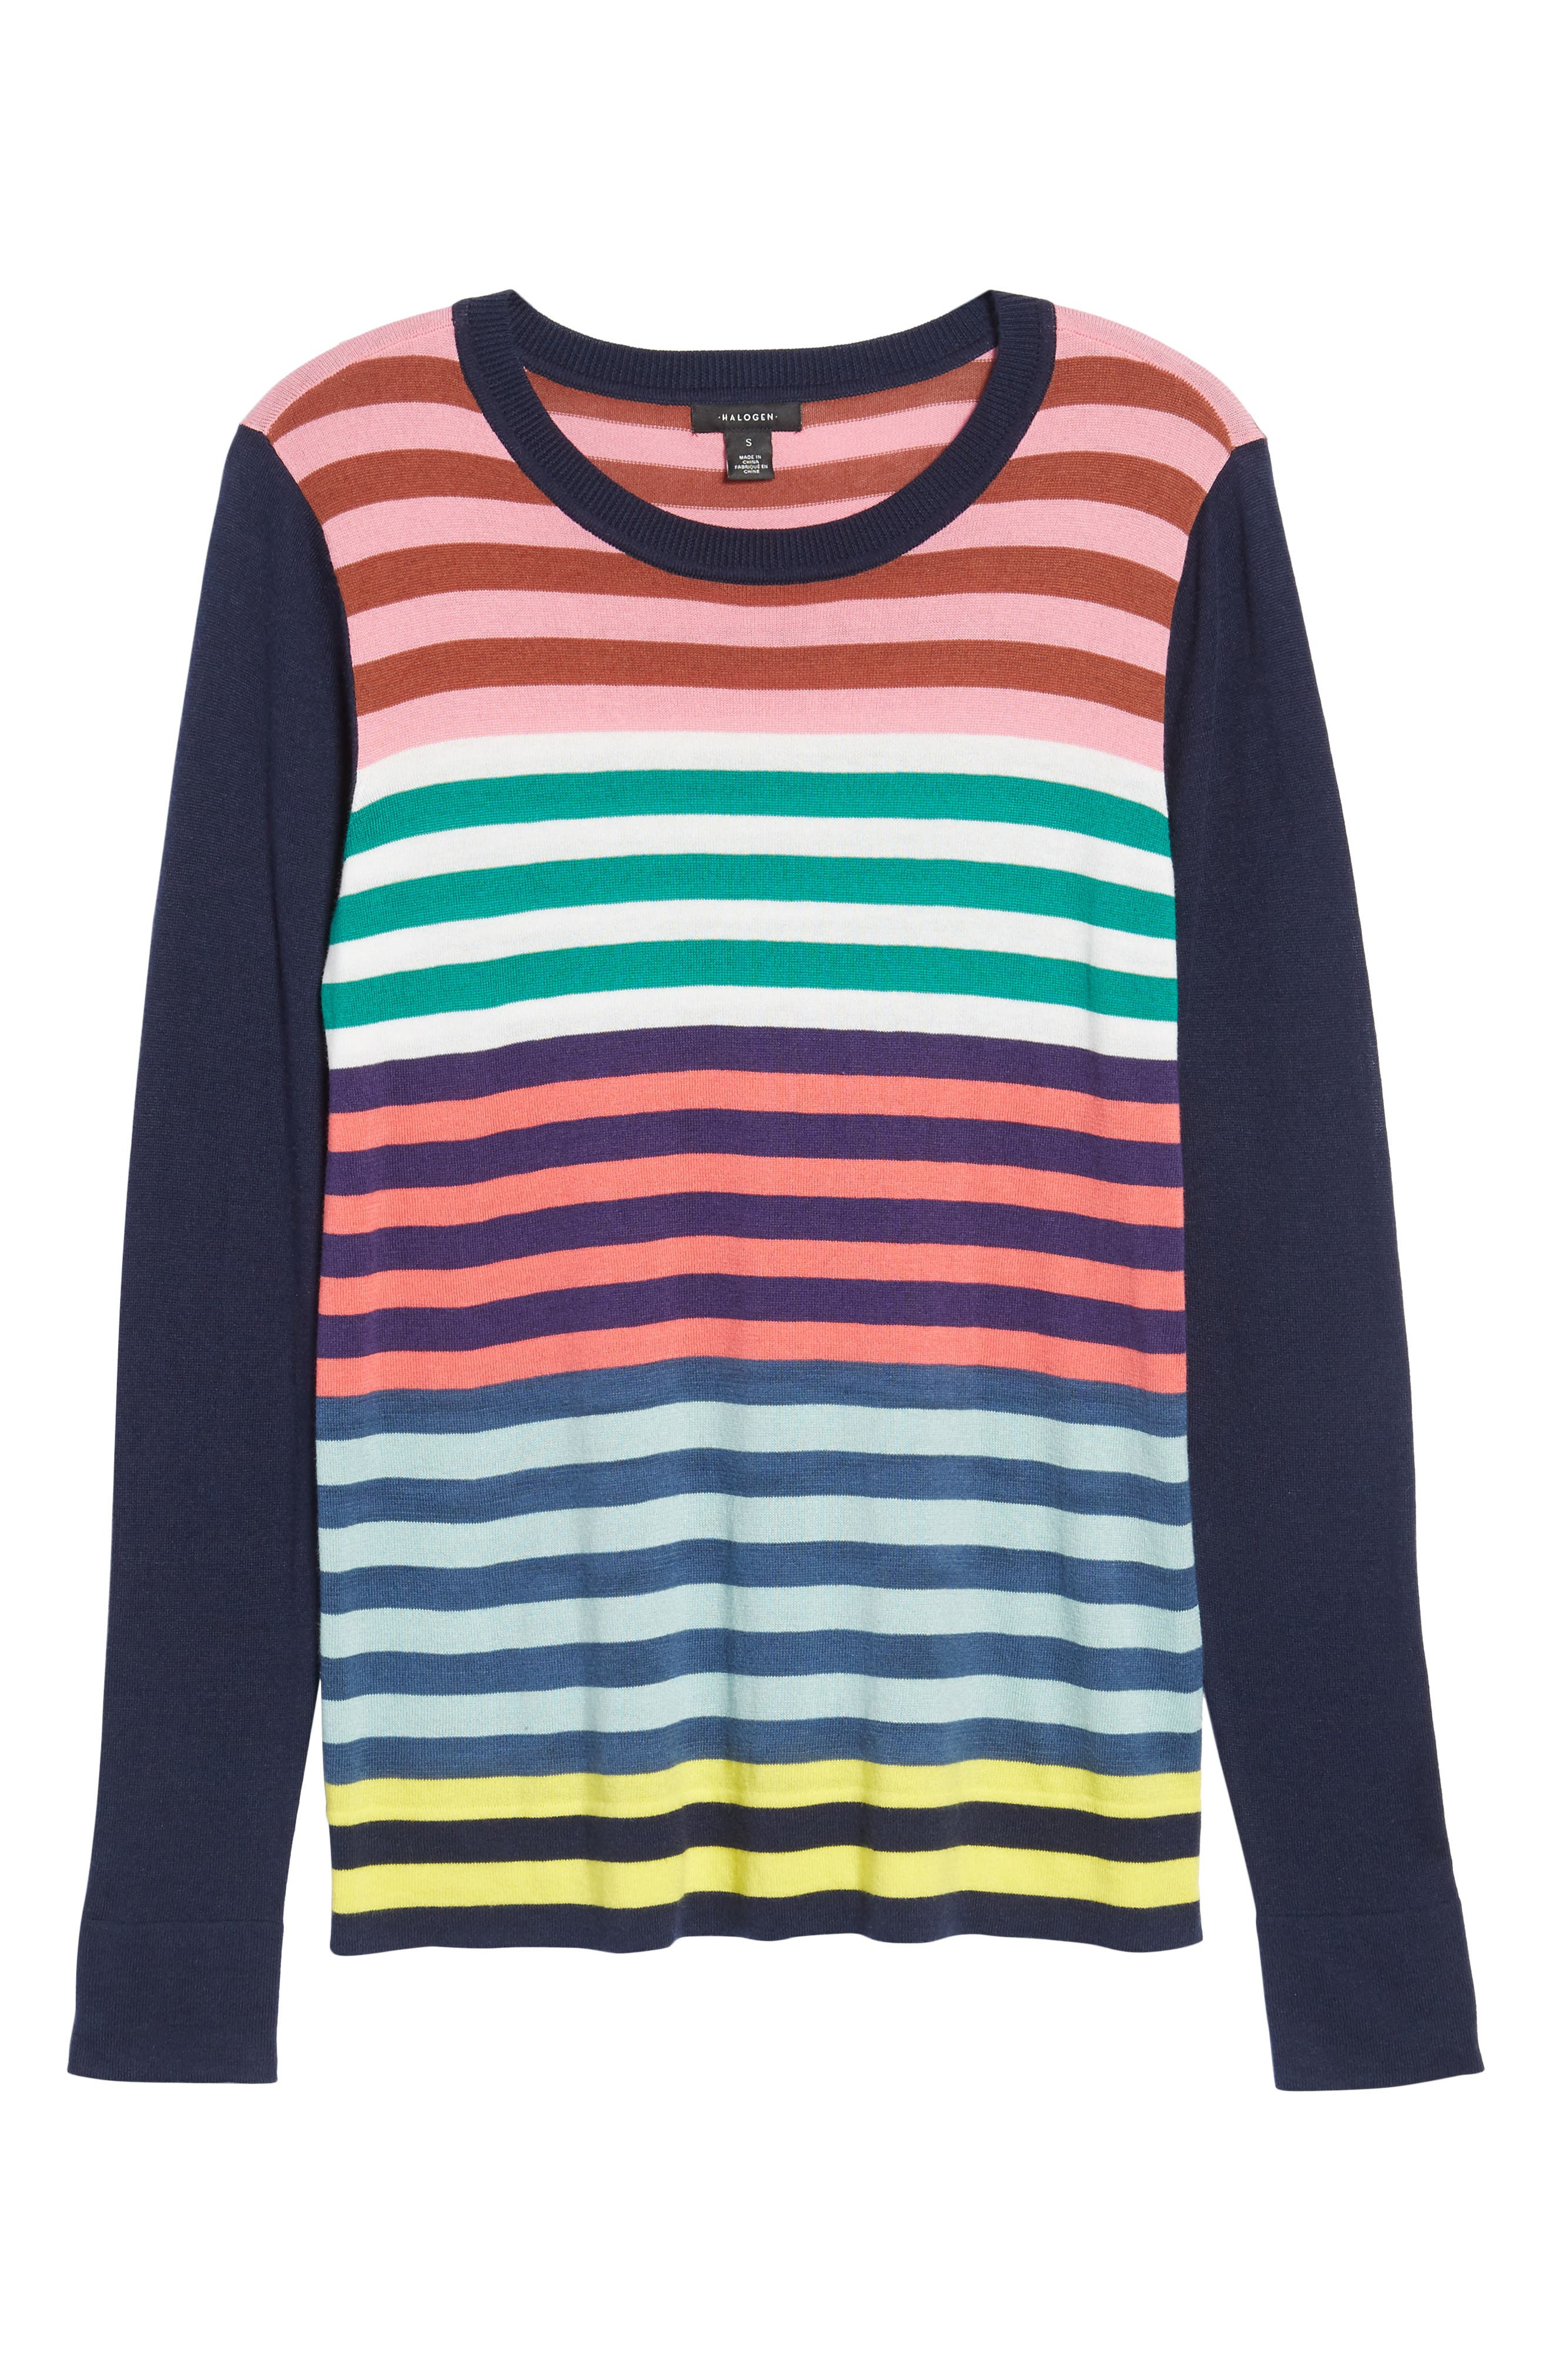 Colorblock Stripe Sweater,                             Alternate thumbnail 6, color,                             Coral Multi Stripe